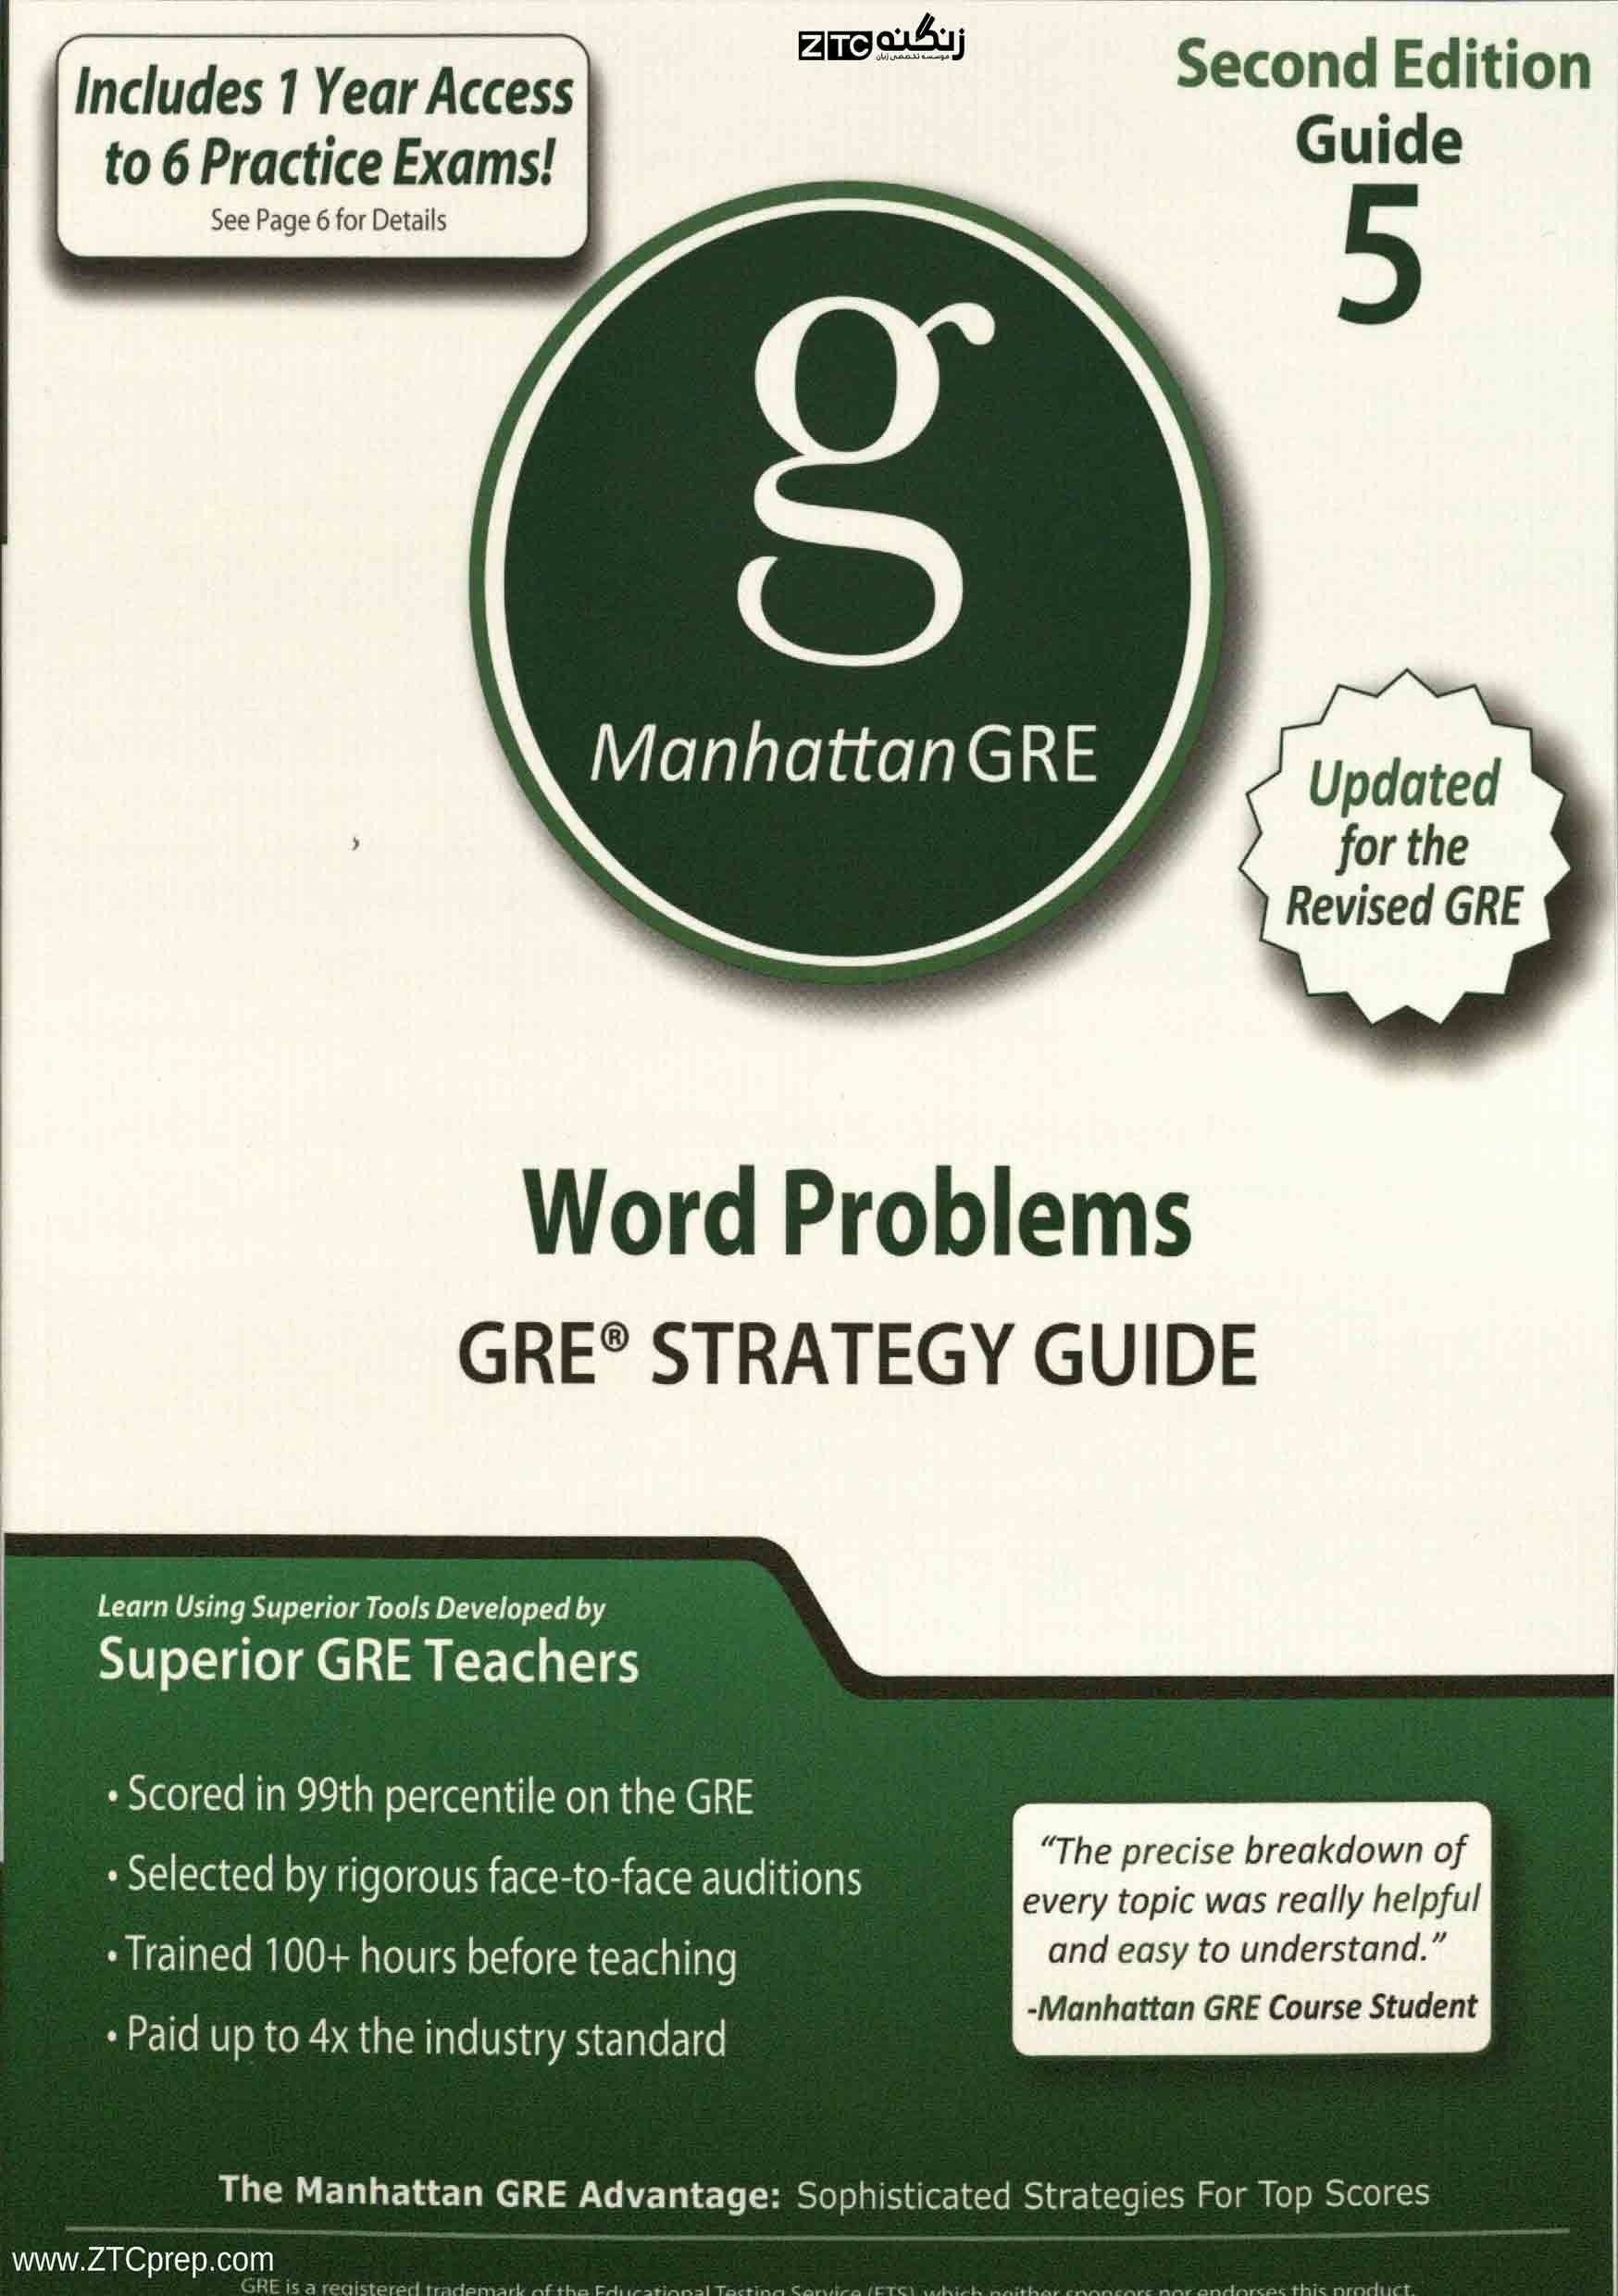 Manhattan GRE 5 Word Problems GRE STRATEGY GUIDE